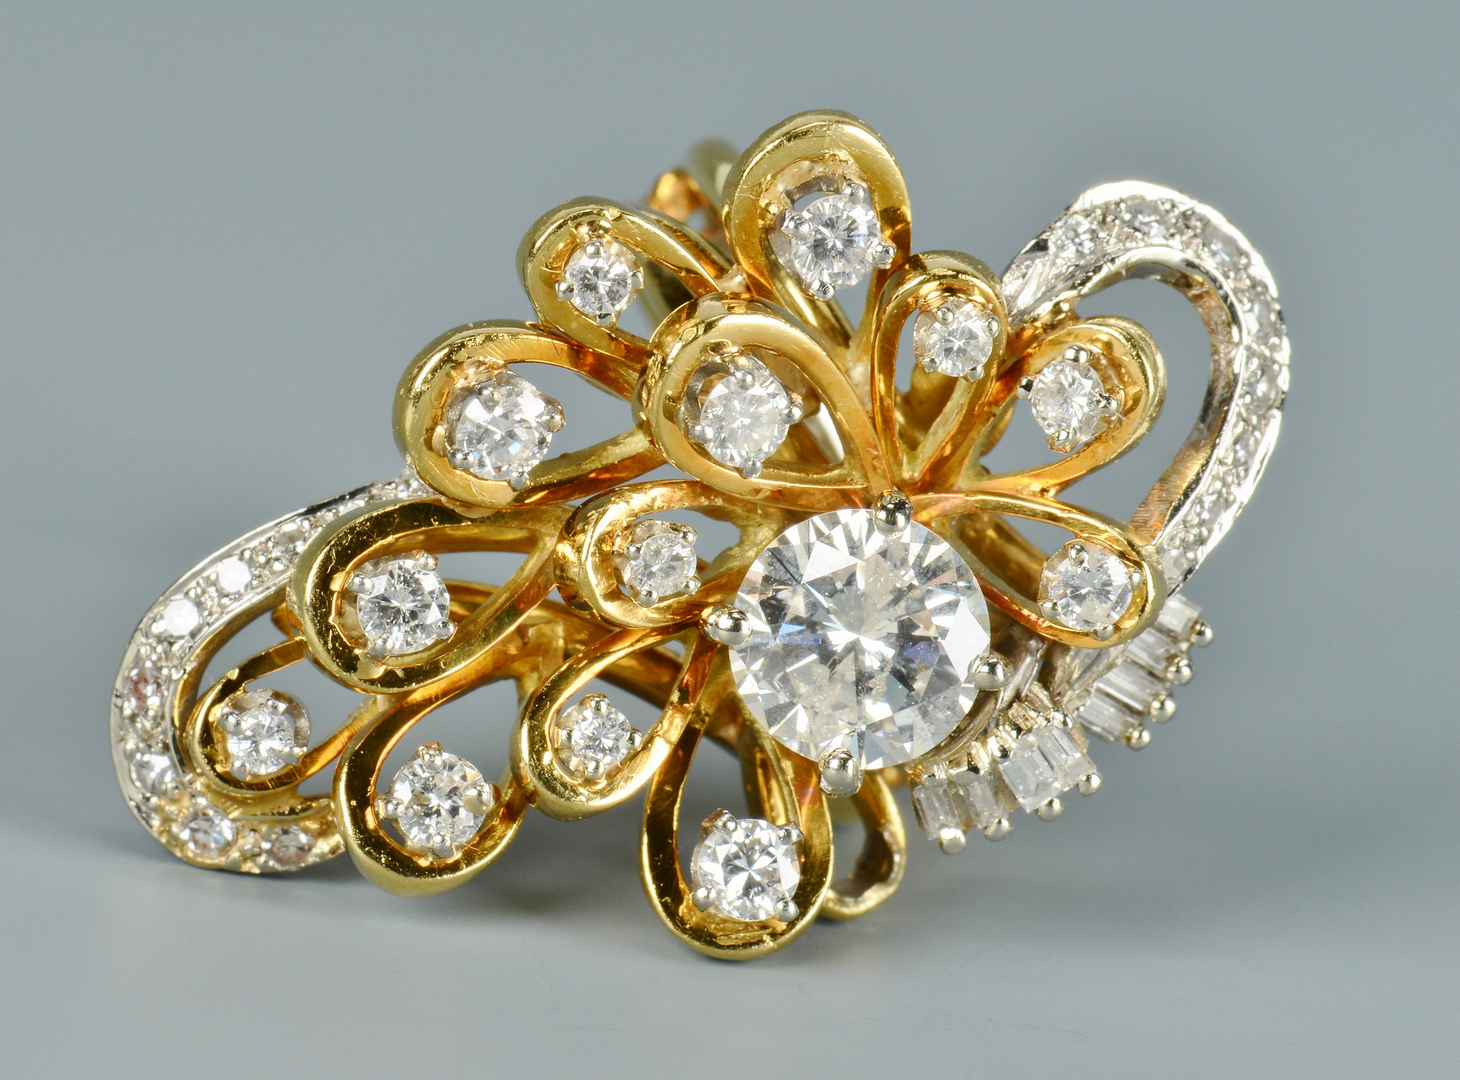 Lot 3088050: 18k Custom Cluster Diamond Ring